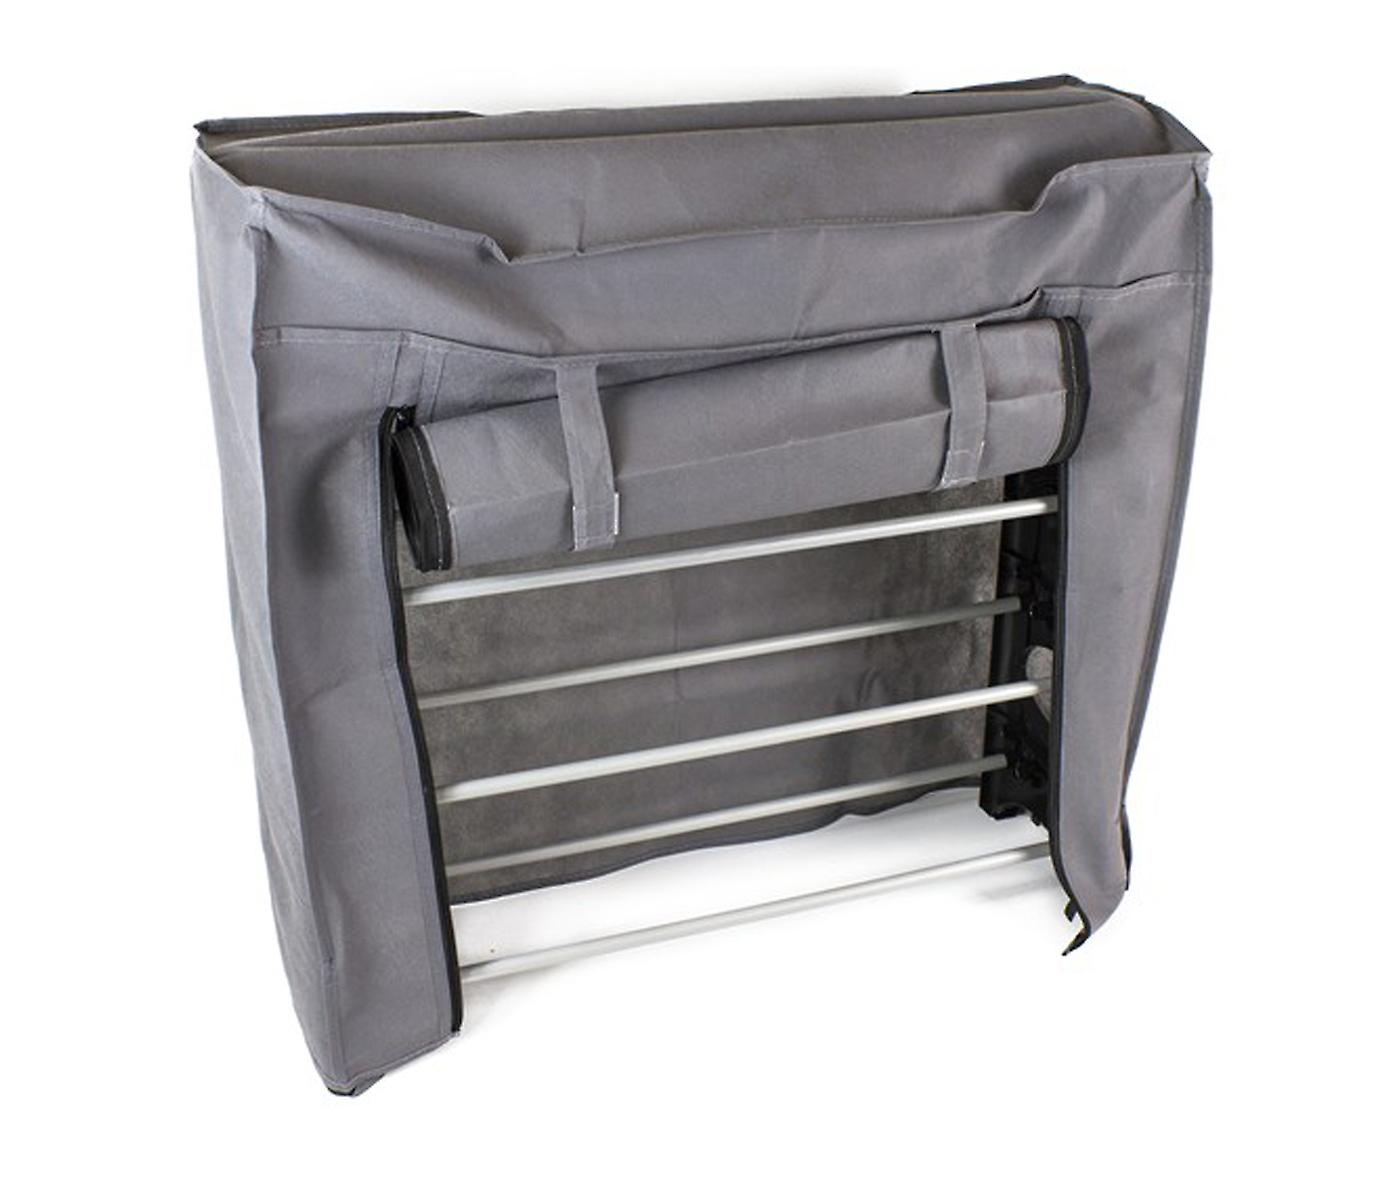 Easy to Assemble Shoe Rack With Shelves Perfect For Extra Storage in Your Home